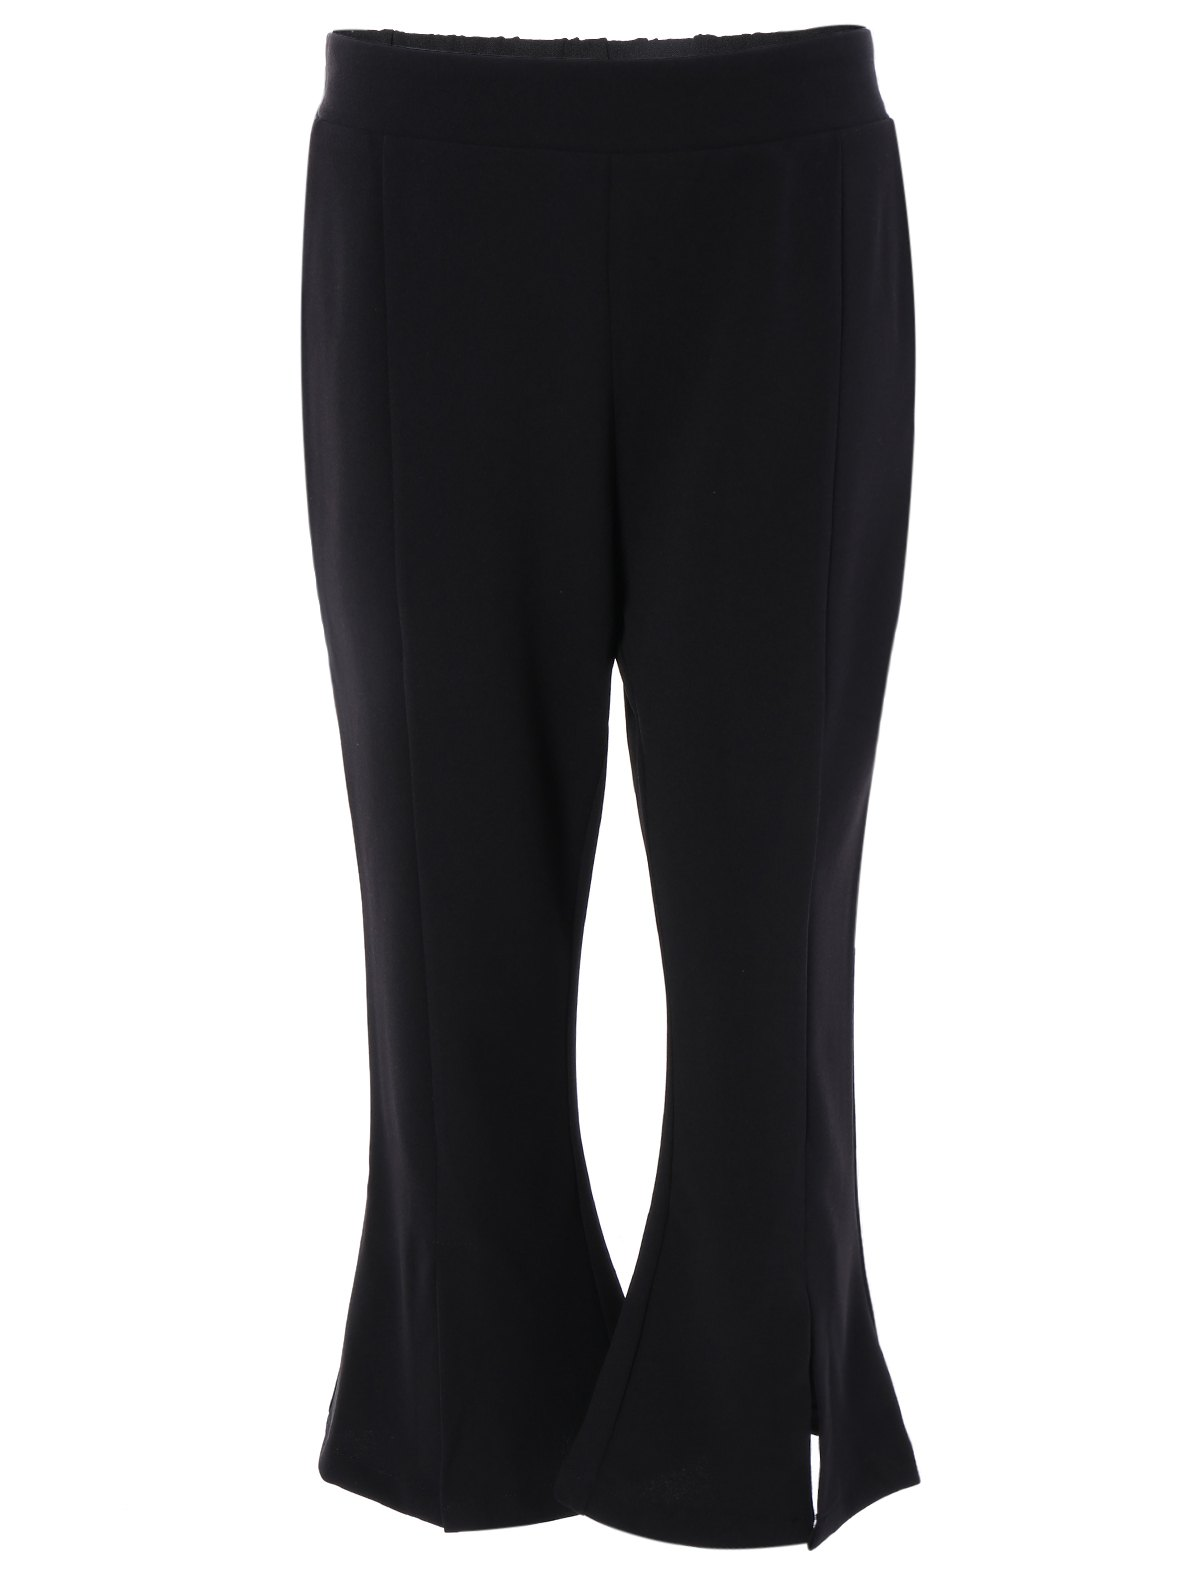 Simple Women's Black Side Slit Boot Cut Pants